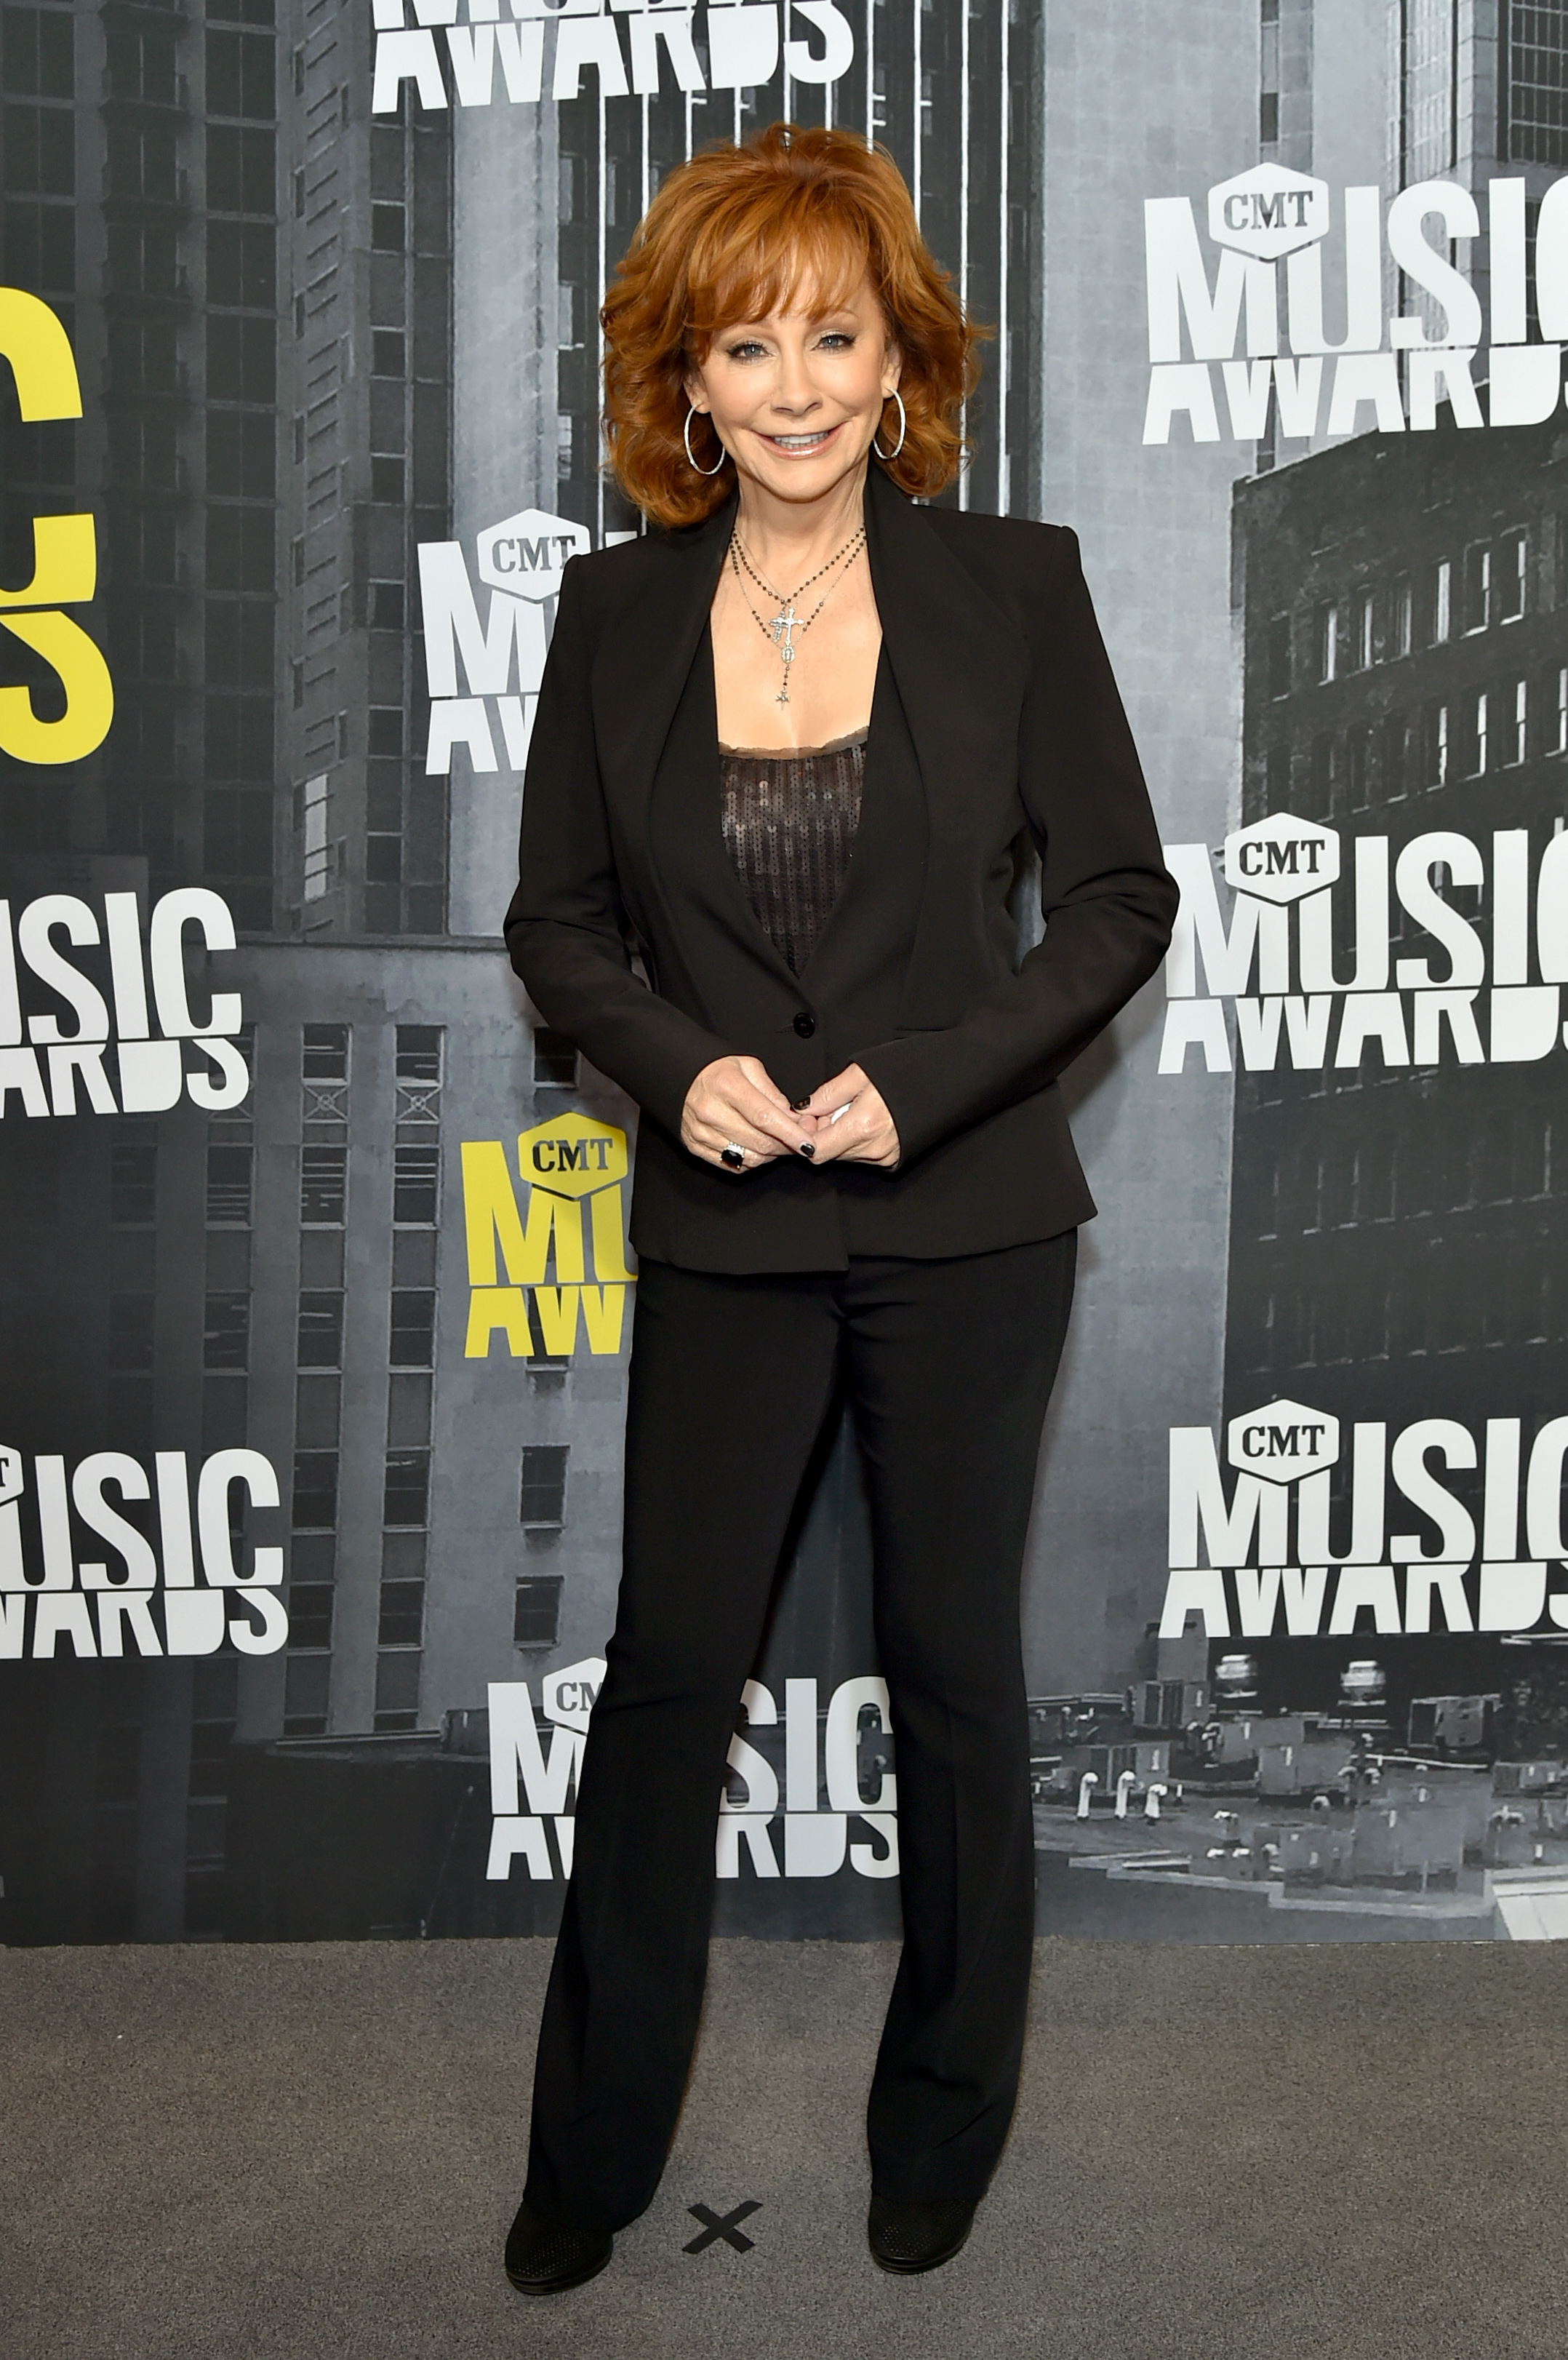 NASHVILLE, TN - JUNE 07: Singer-songwriter Reba McEntire attends the 2017 CMT Music Awards at the Music City Center on June 7, 2017 in Nashville, Tennessee. (Photo by Mike Coppola/WireImage)